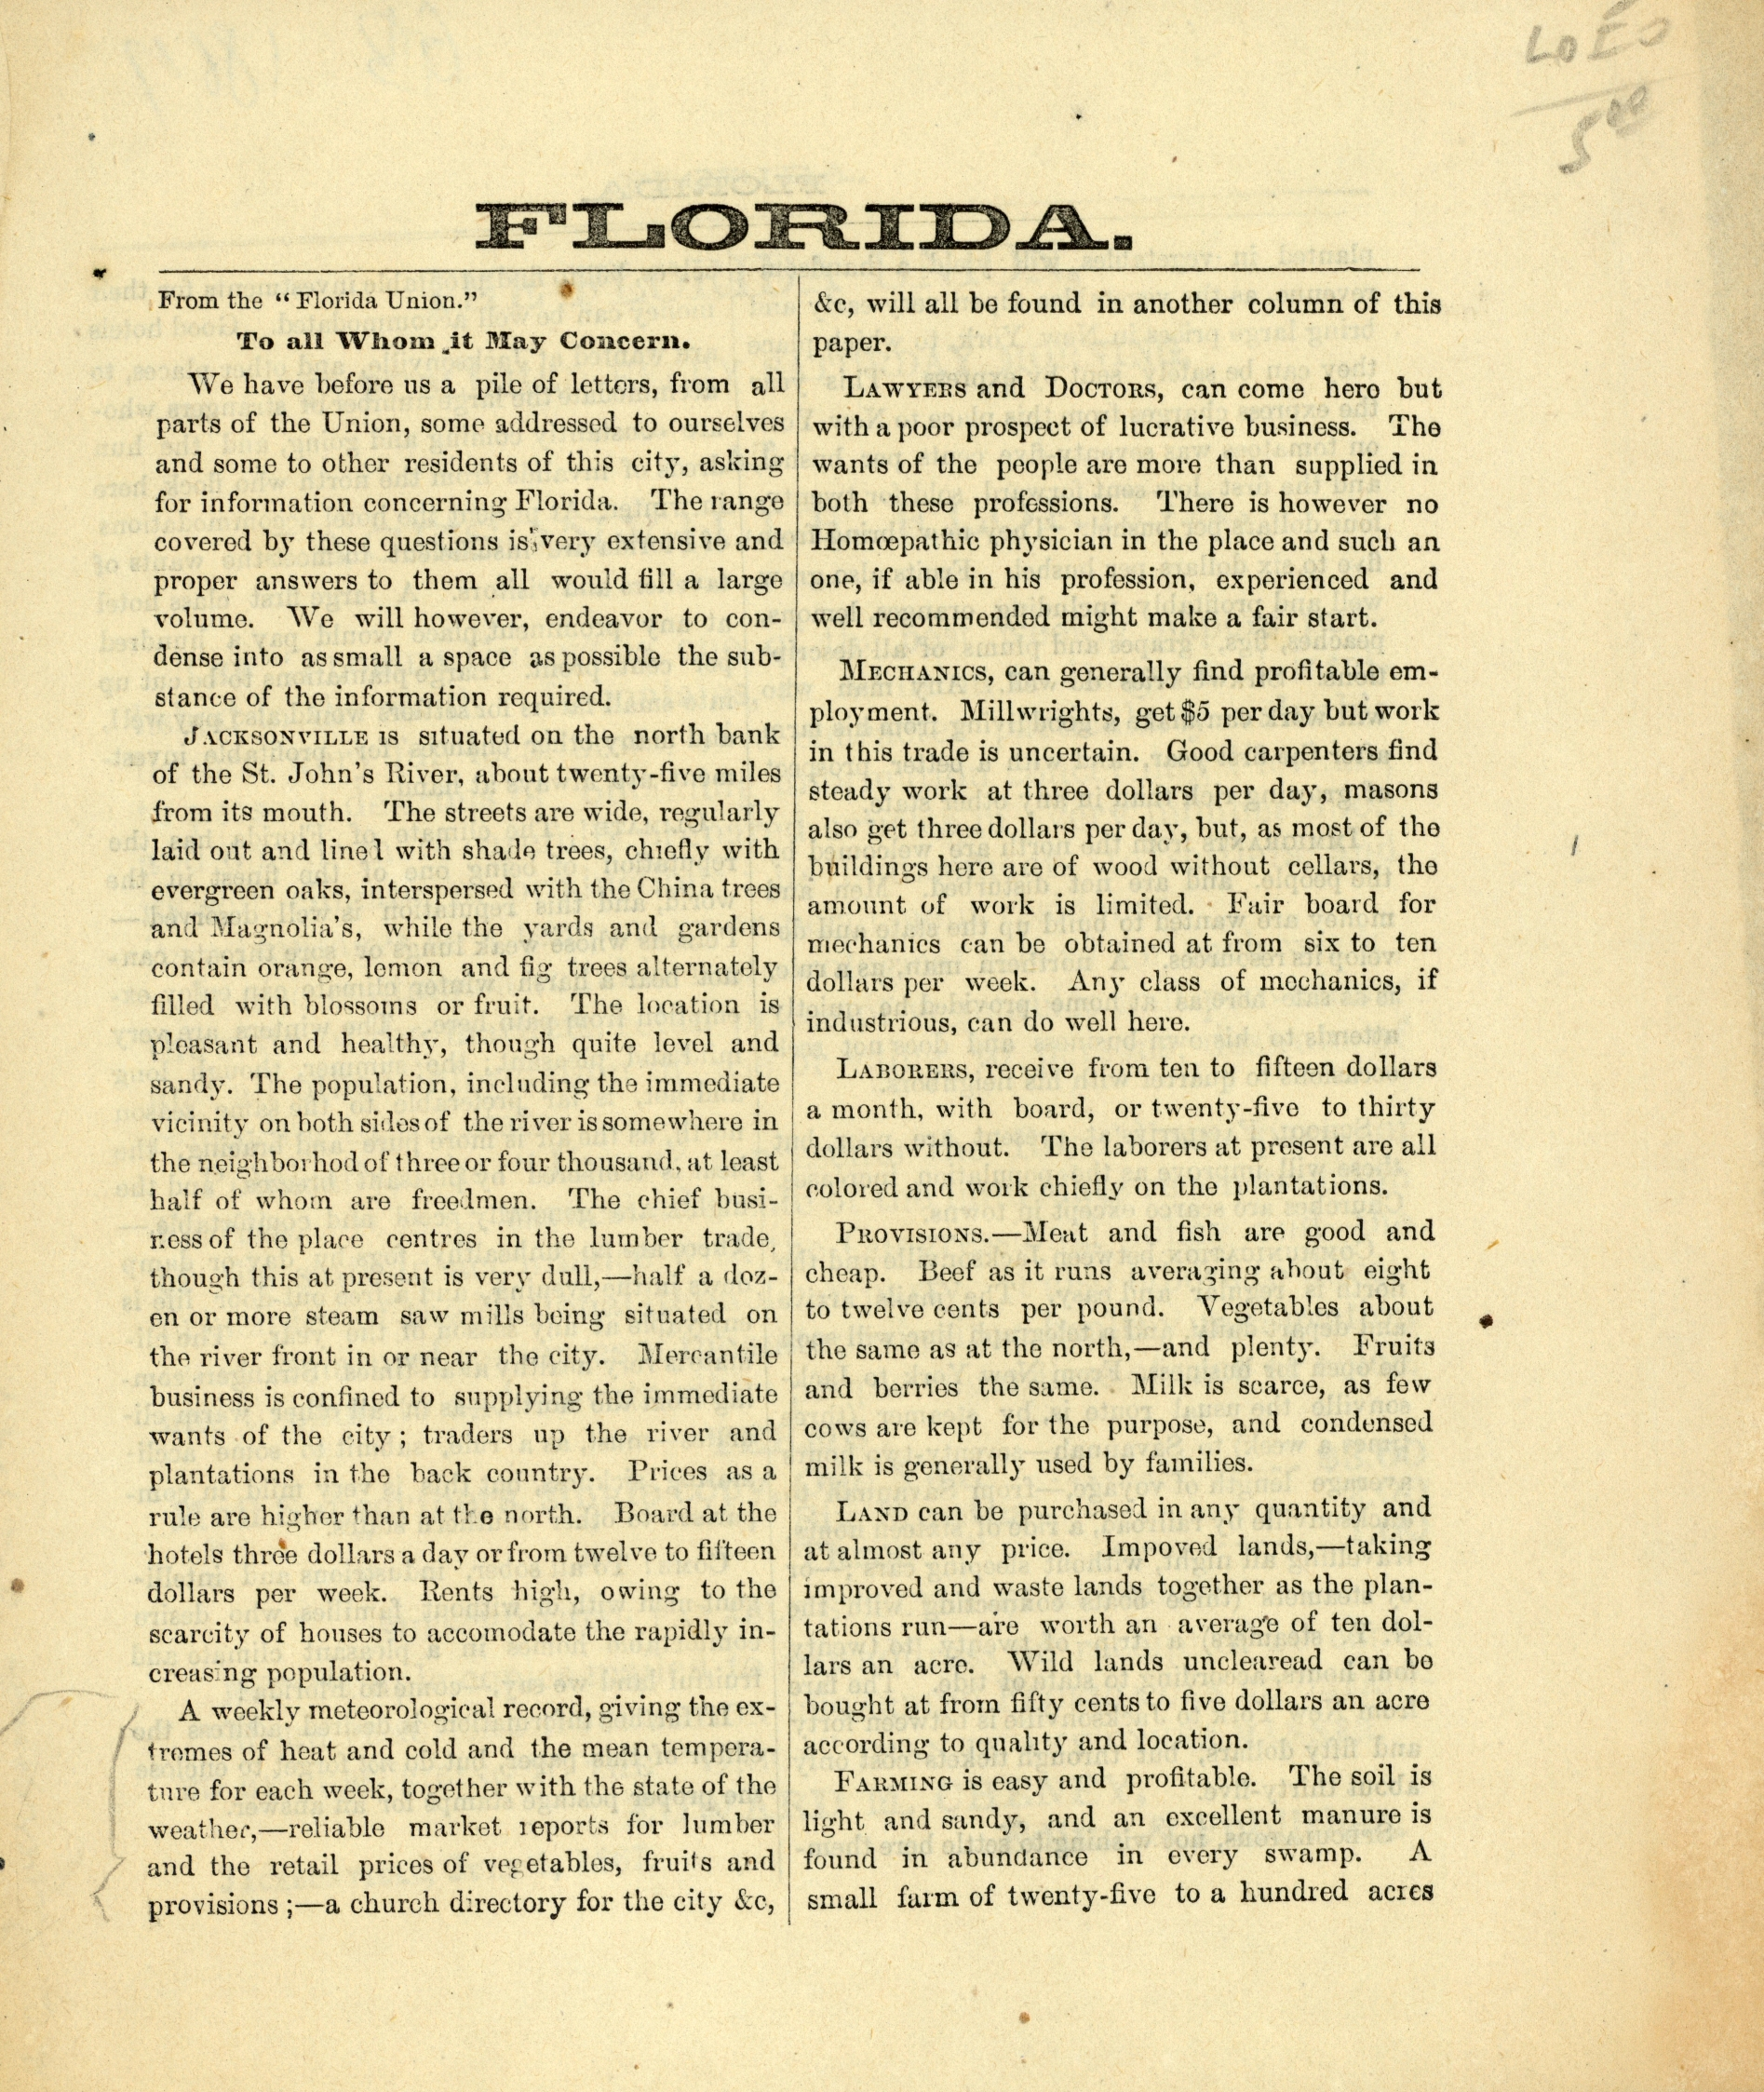 The Florida Union, is published every Saturday morning, at Jacksonville, Florida.